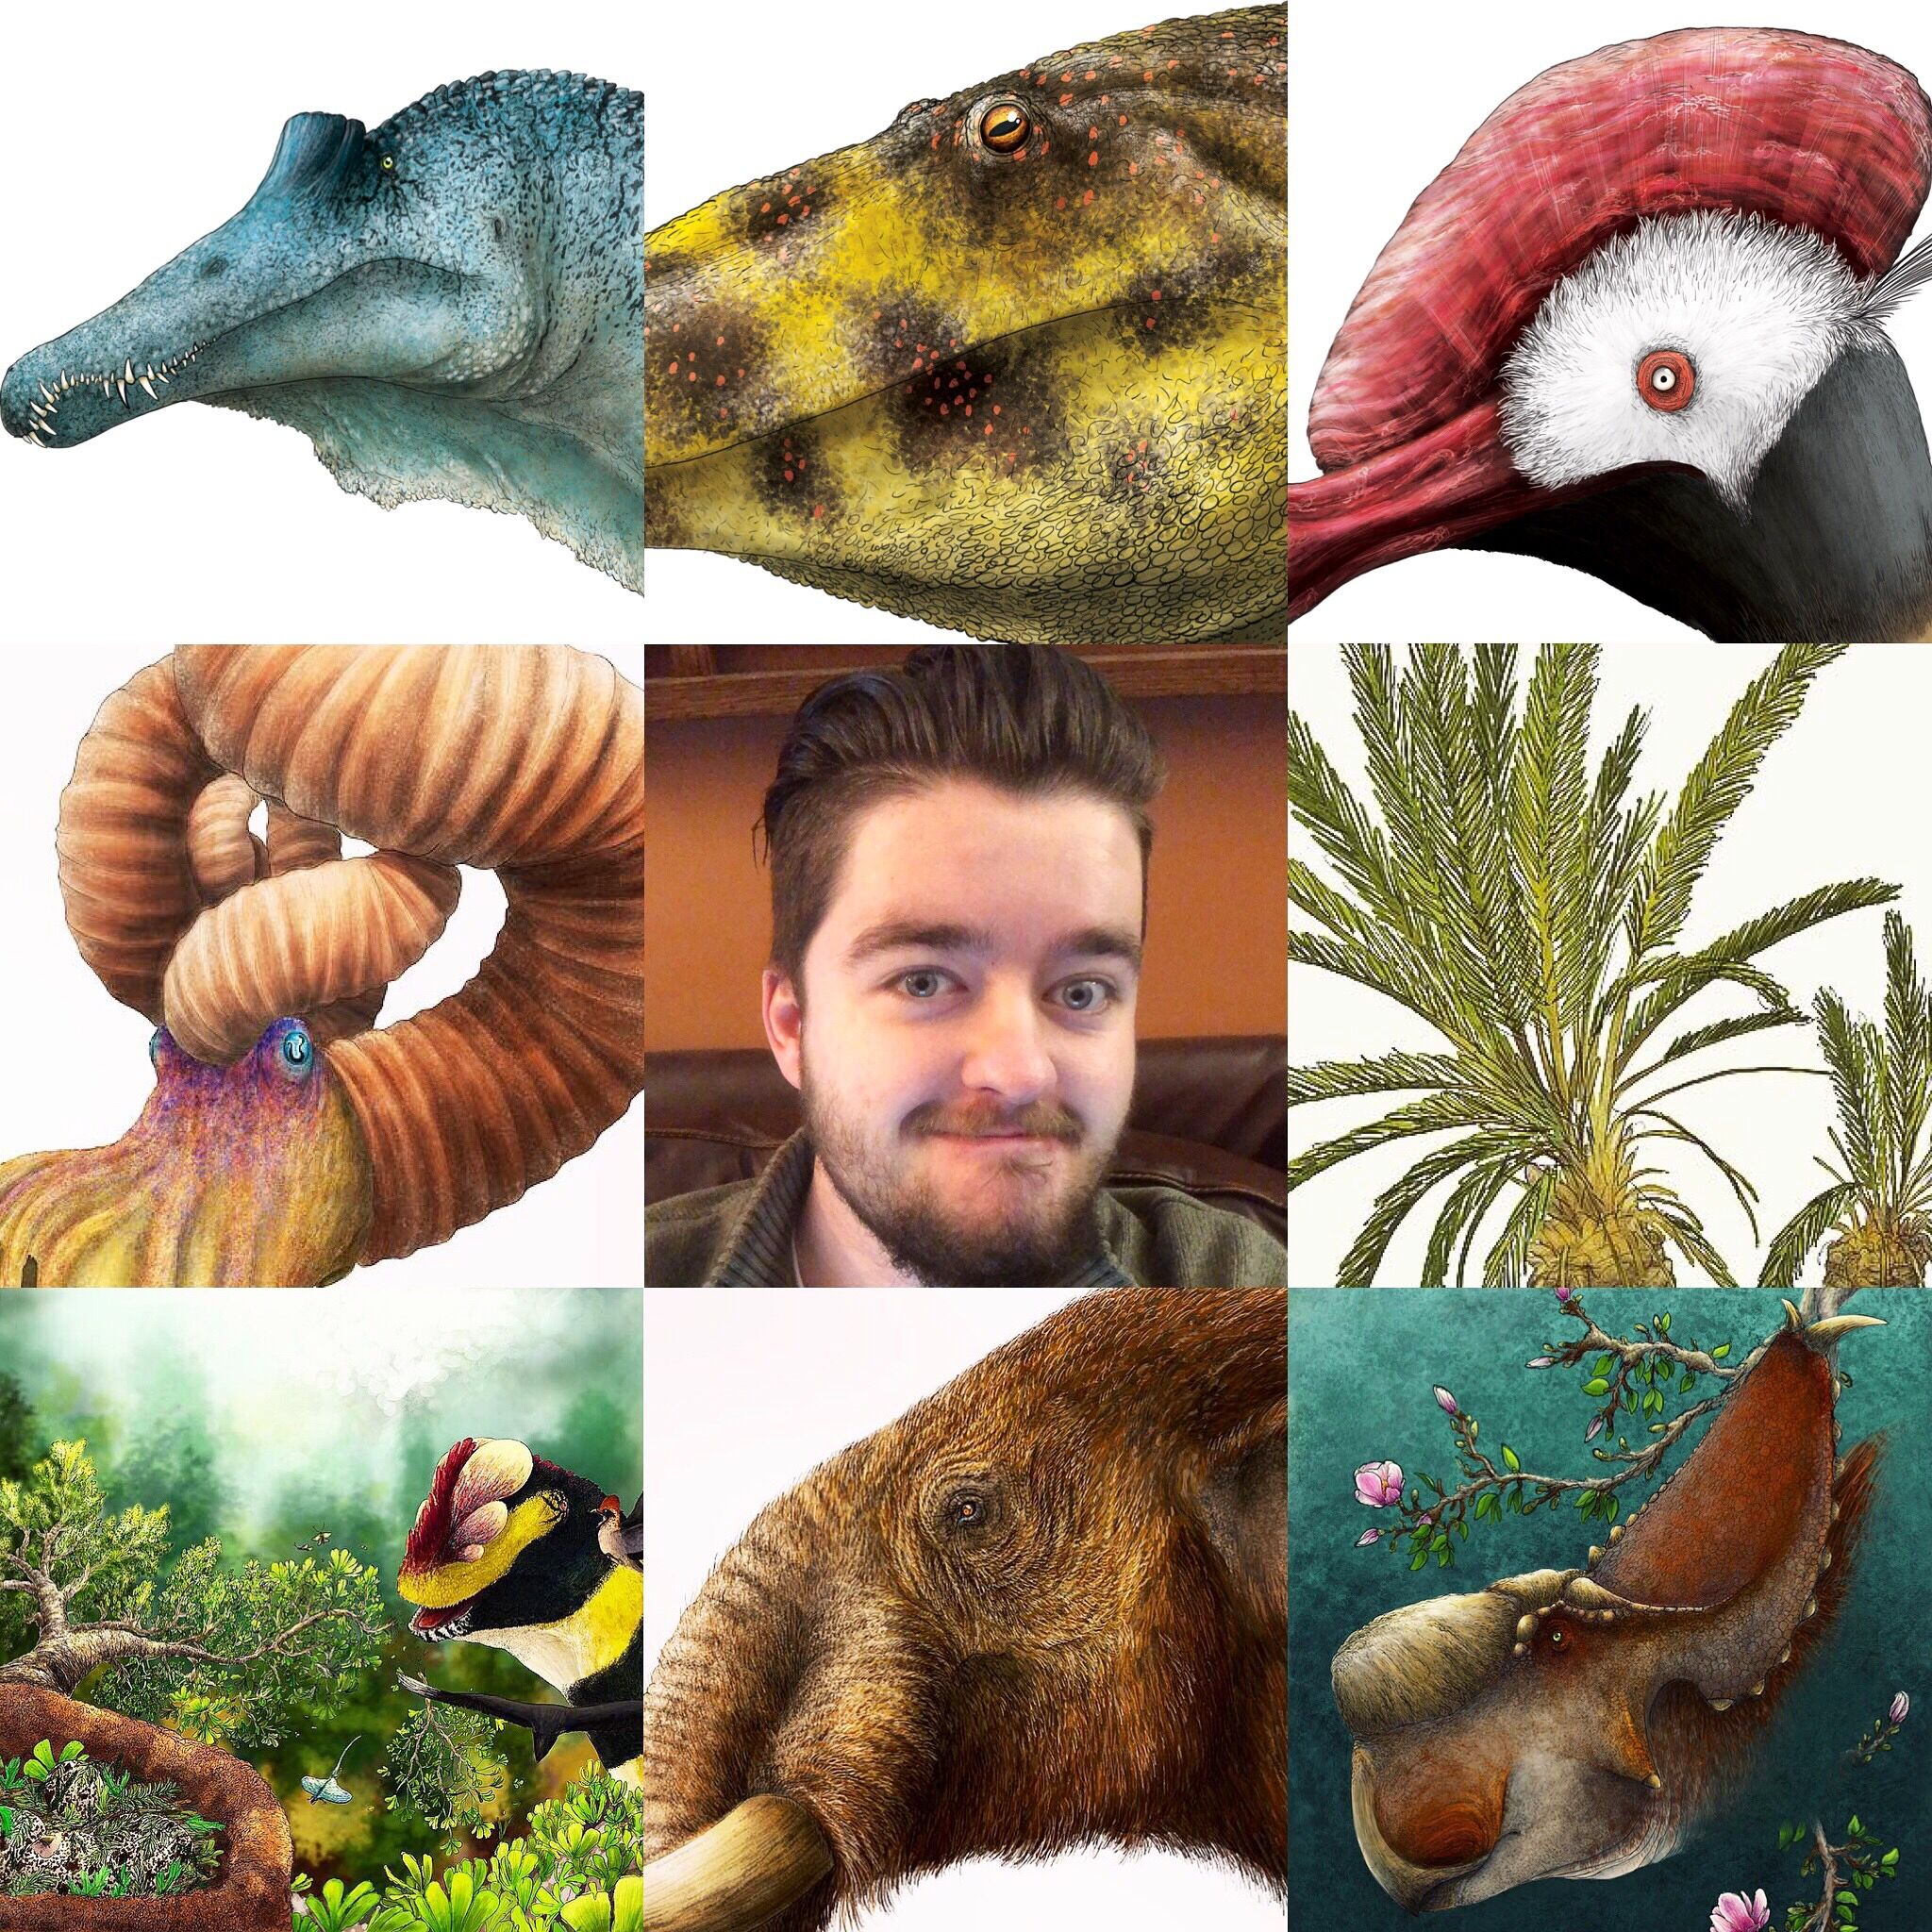 Three by three grid featuring paleoartist Liam Elward and some of his paleoart